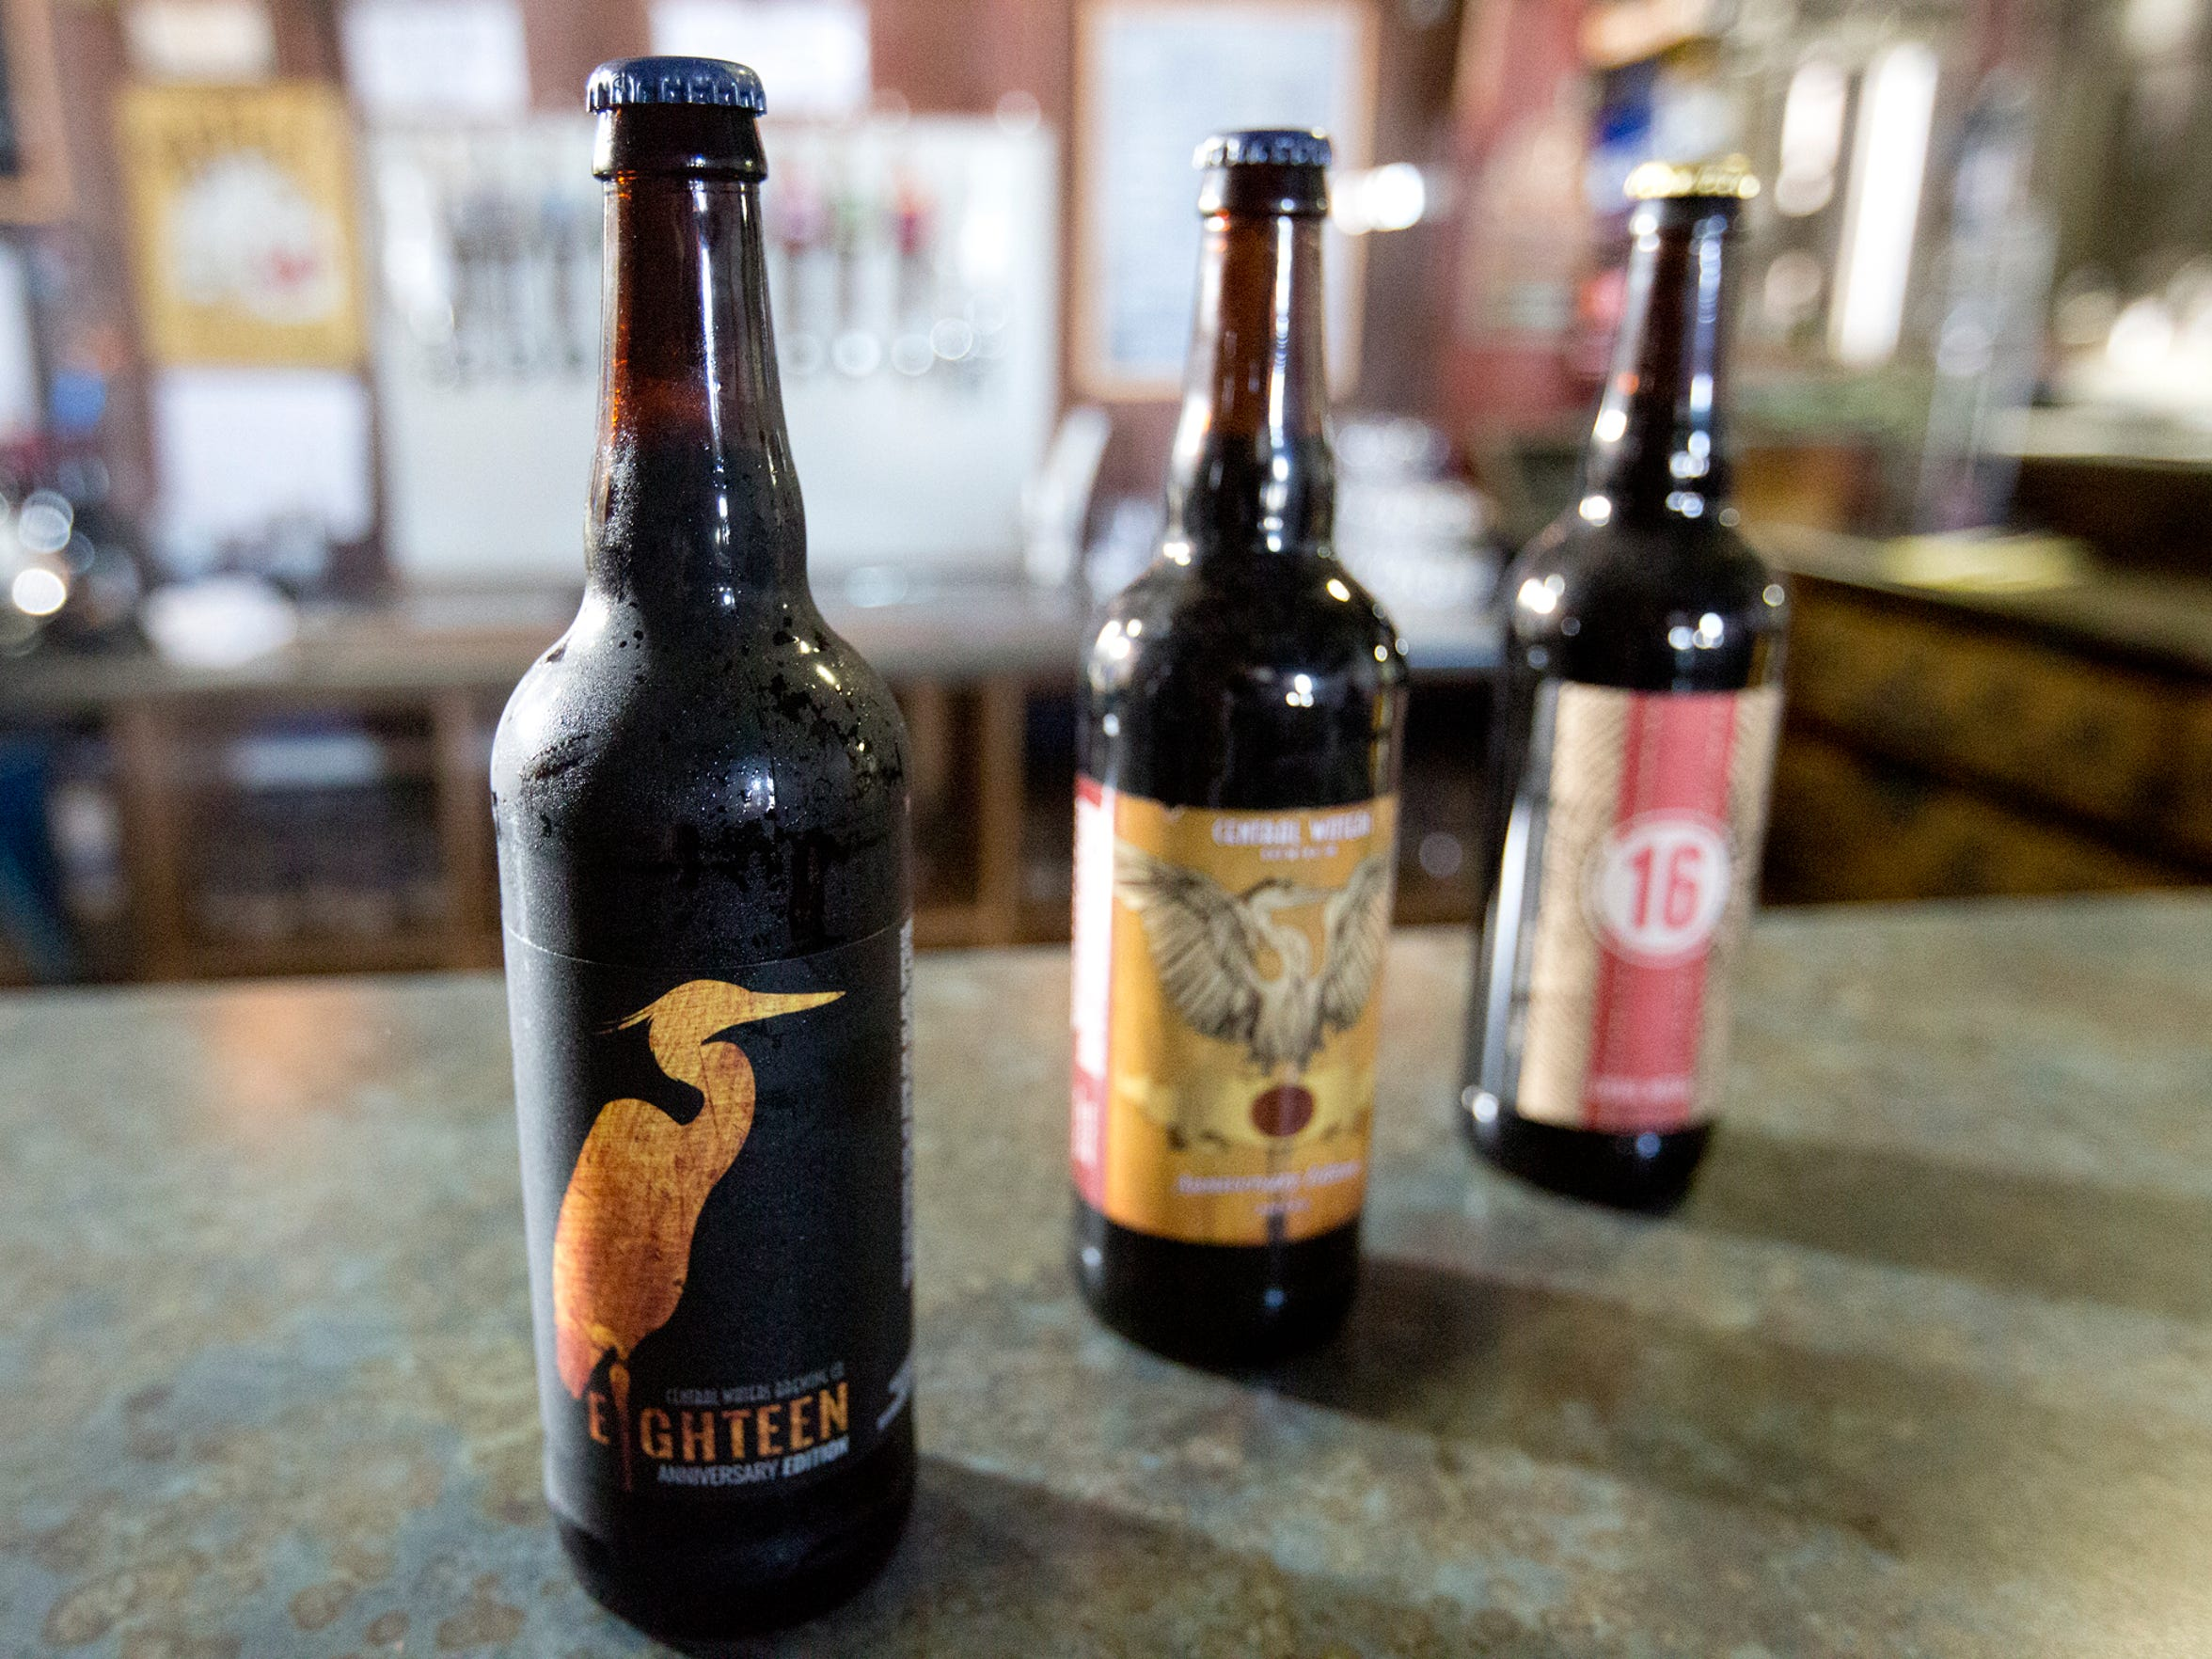 Not only do beer geeks need to be quick on draw to reserve bottles of Central Waters anniversary beer, but must also be able to get to the Amherst brewery during its release party to pick up the beer.